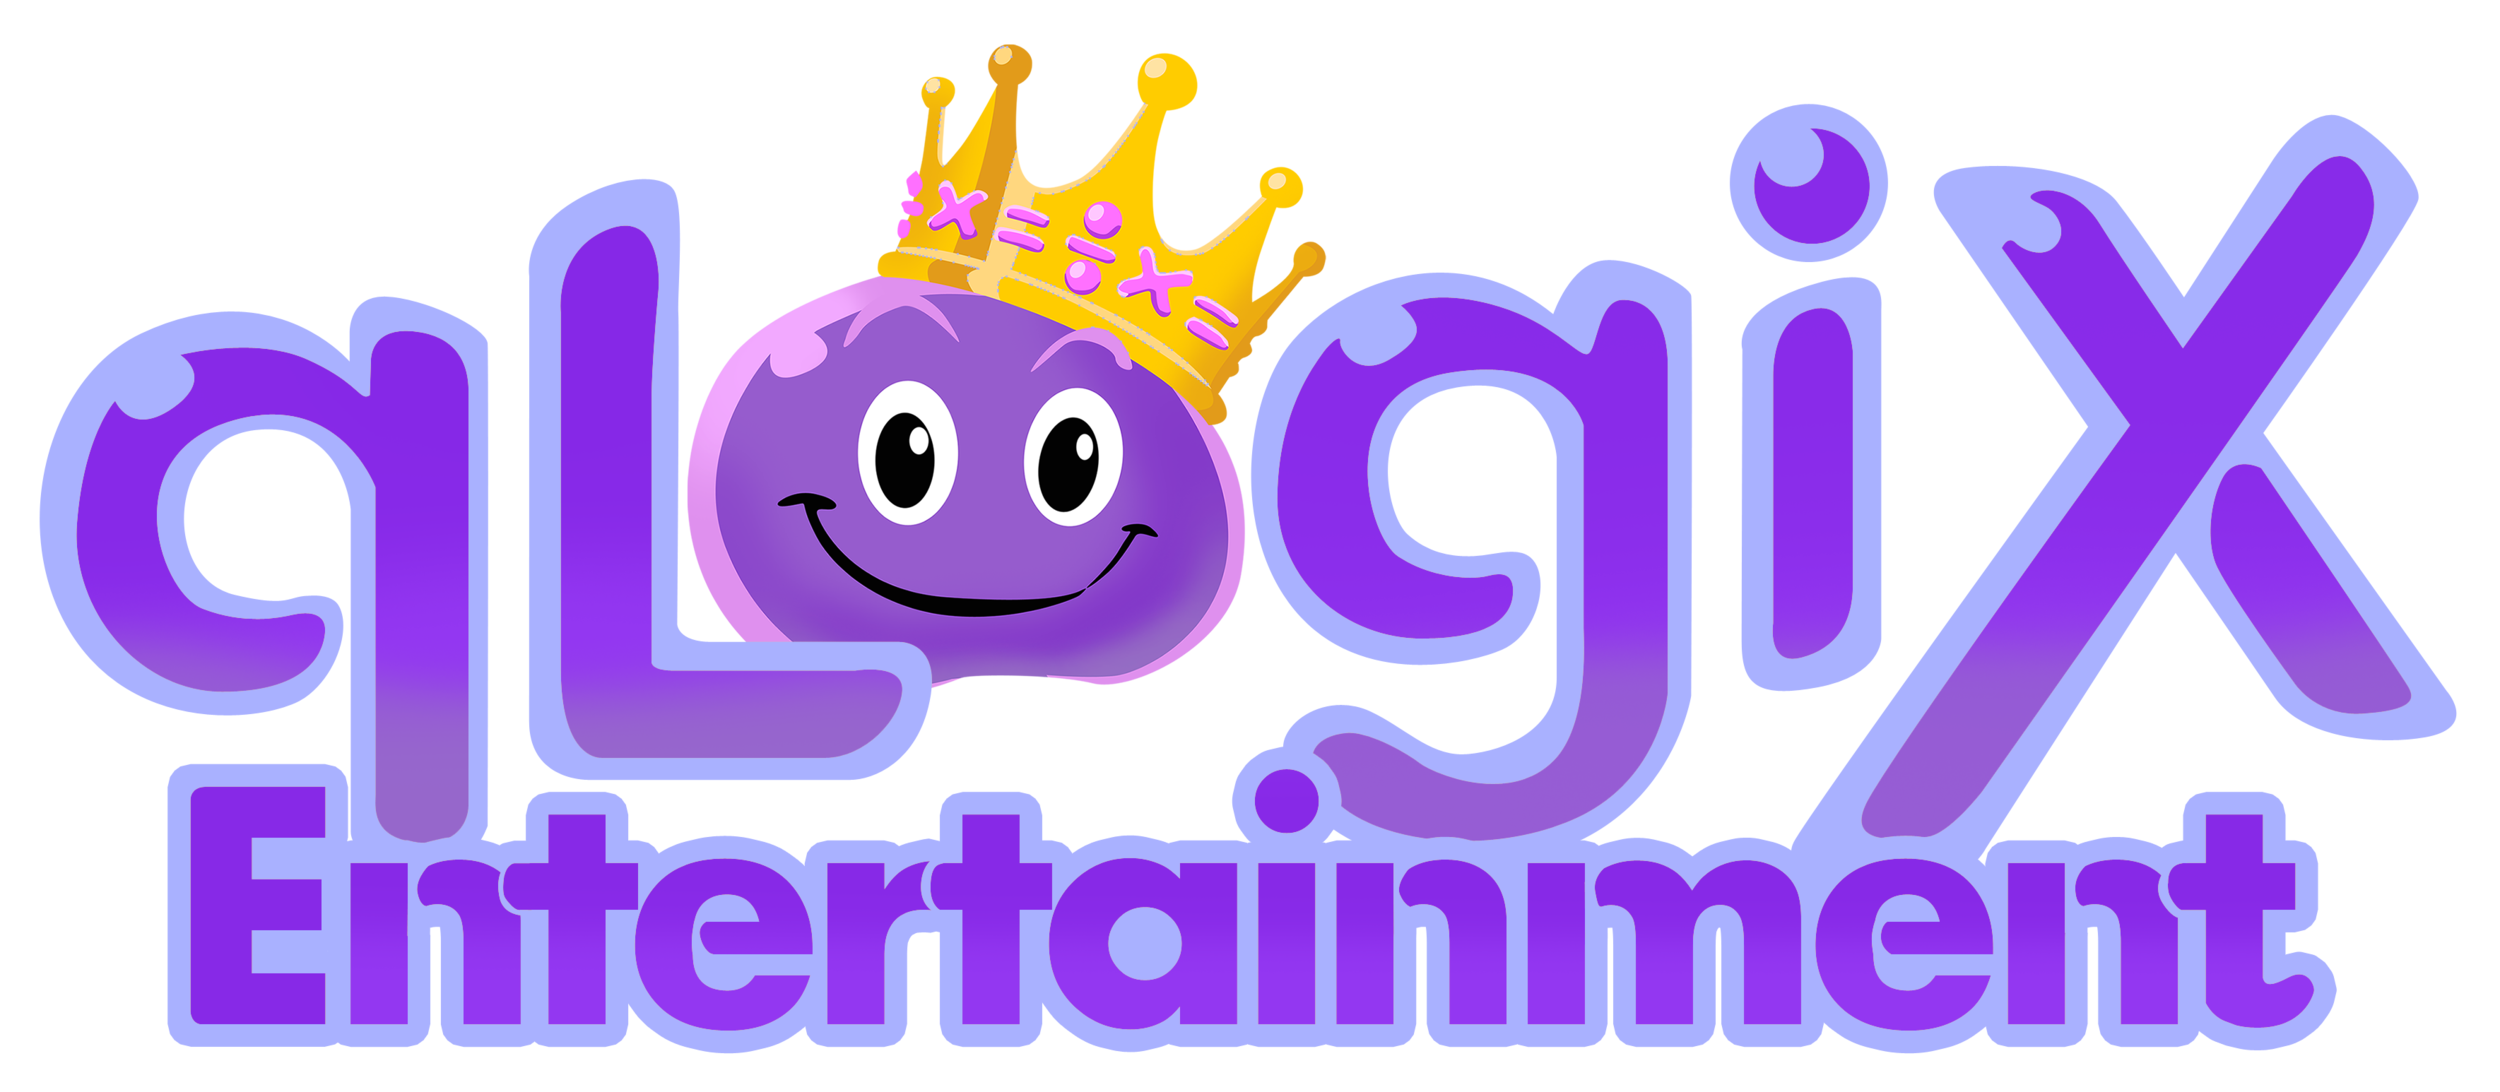 qLogiX Entertainment engages children to learn STEM through fun, interactive, and innovative play.